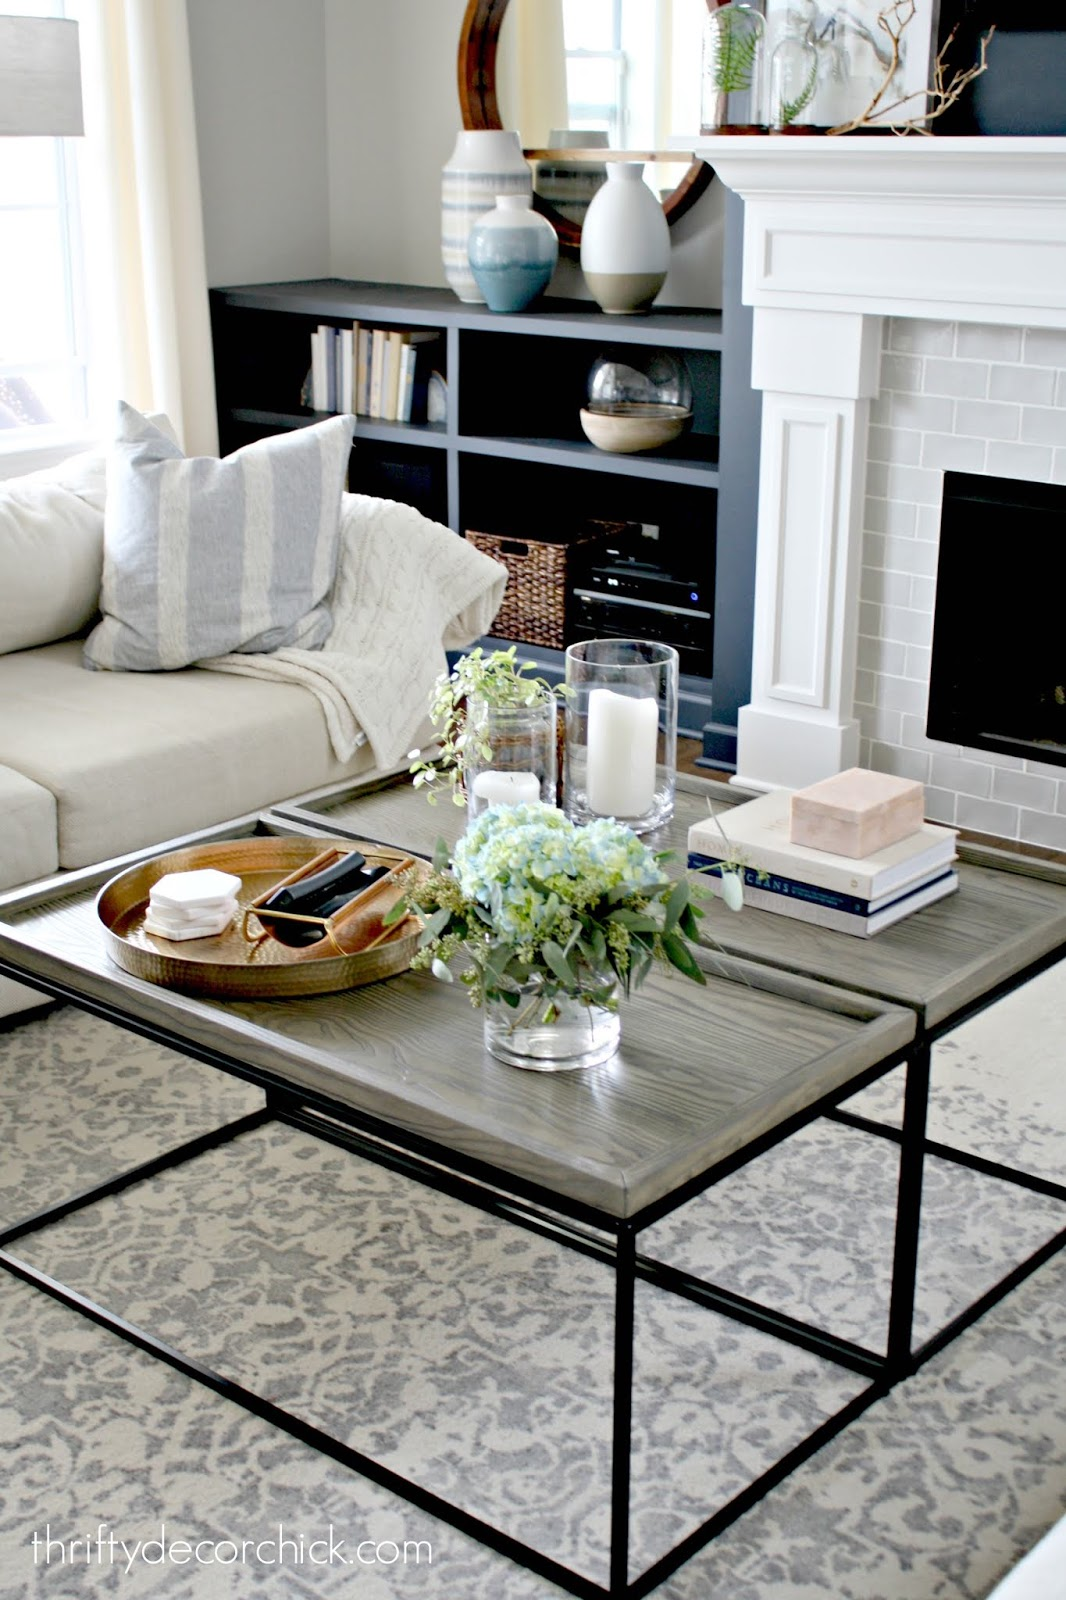 How to get a large coffee table for half the price